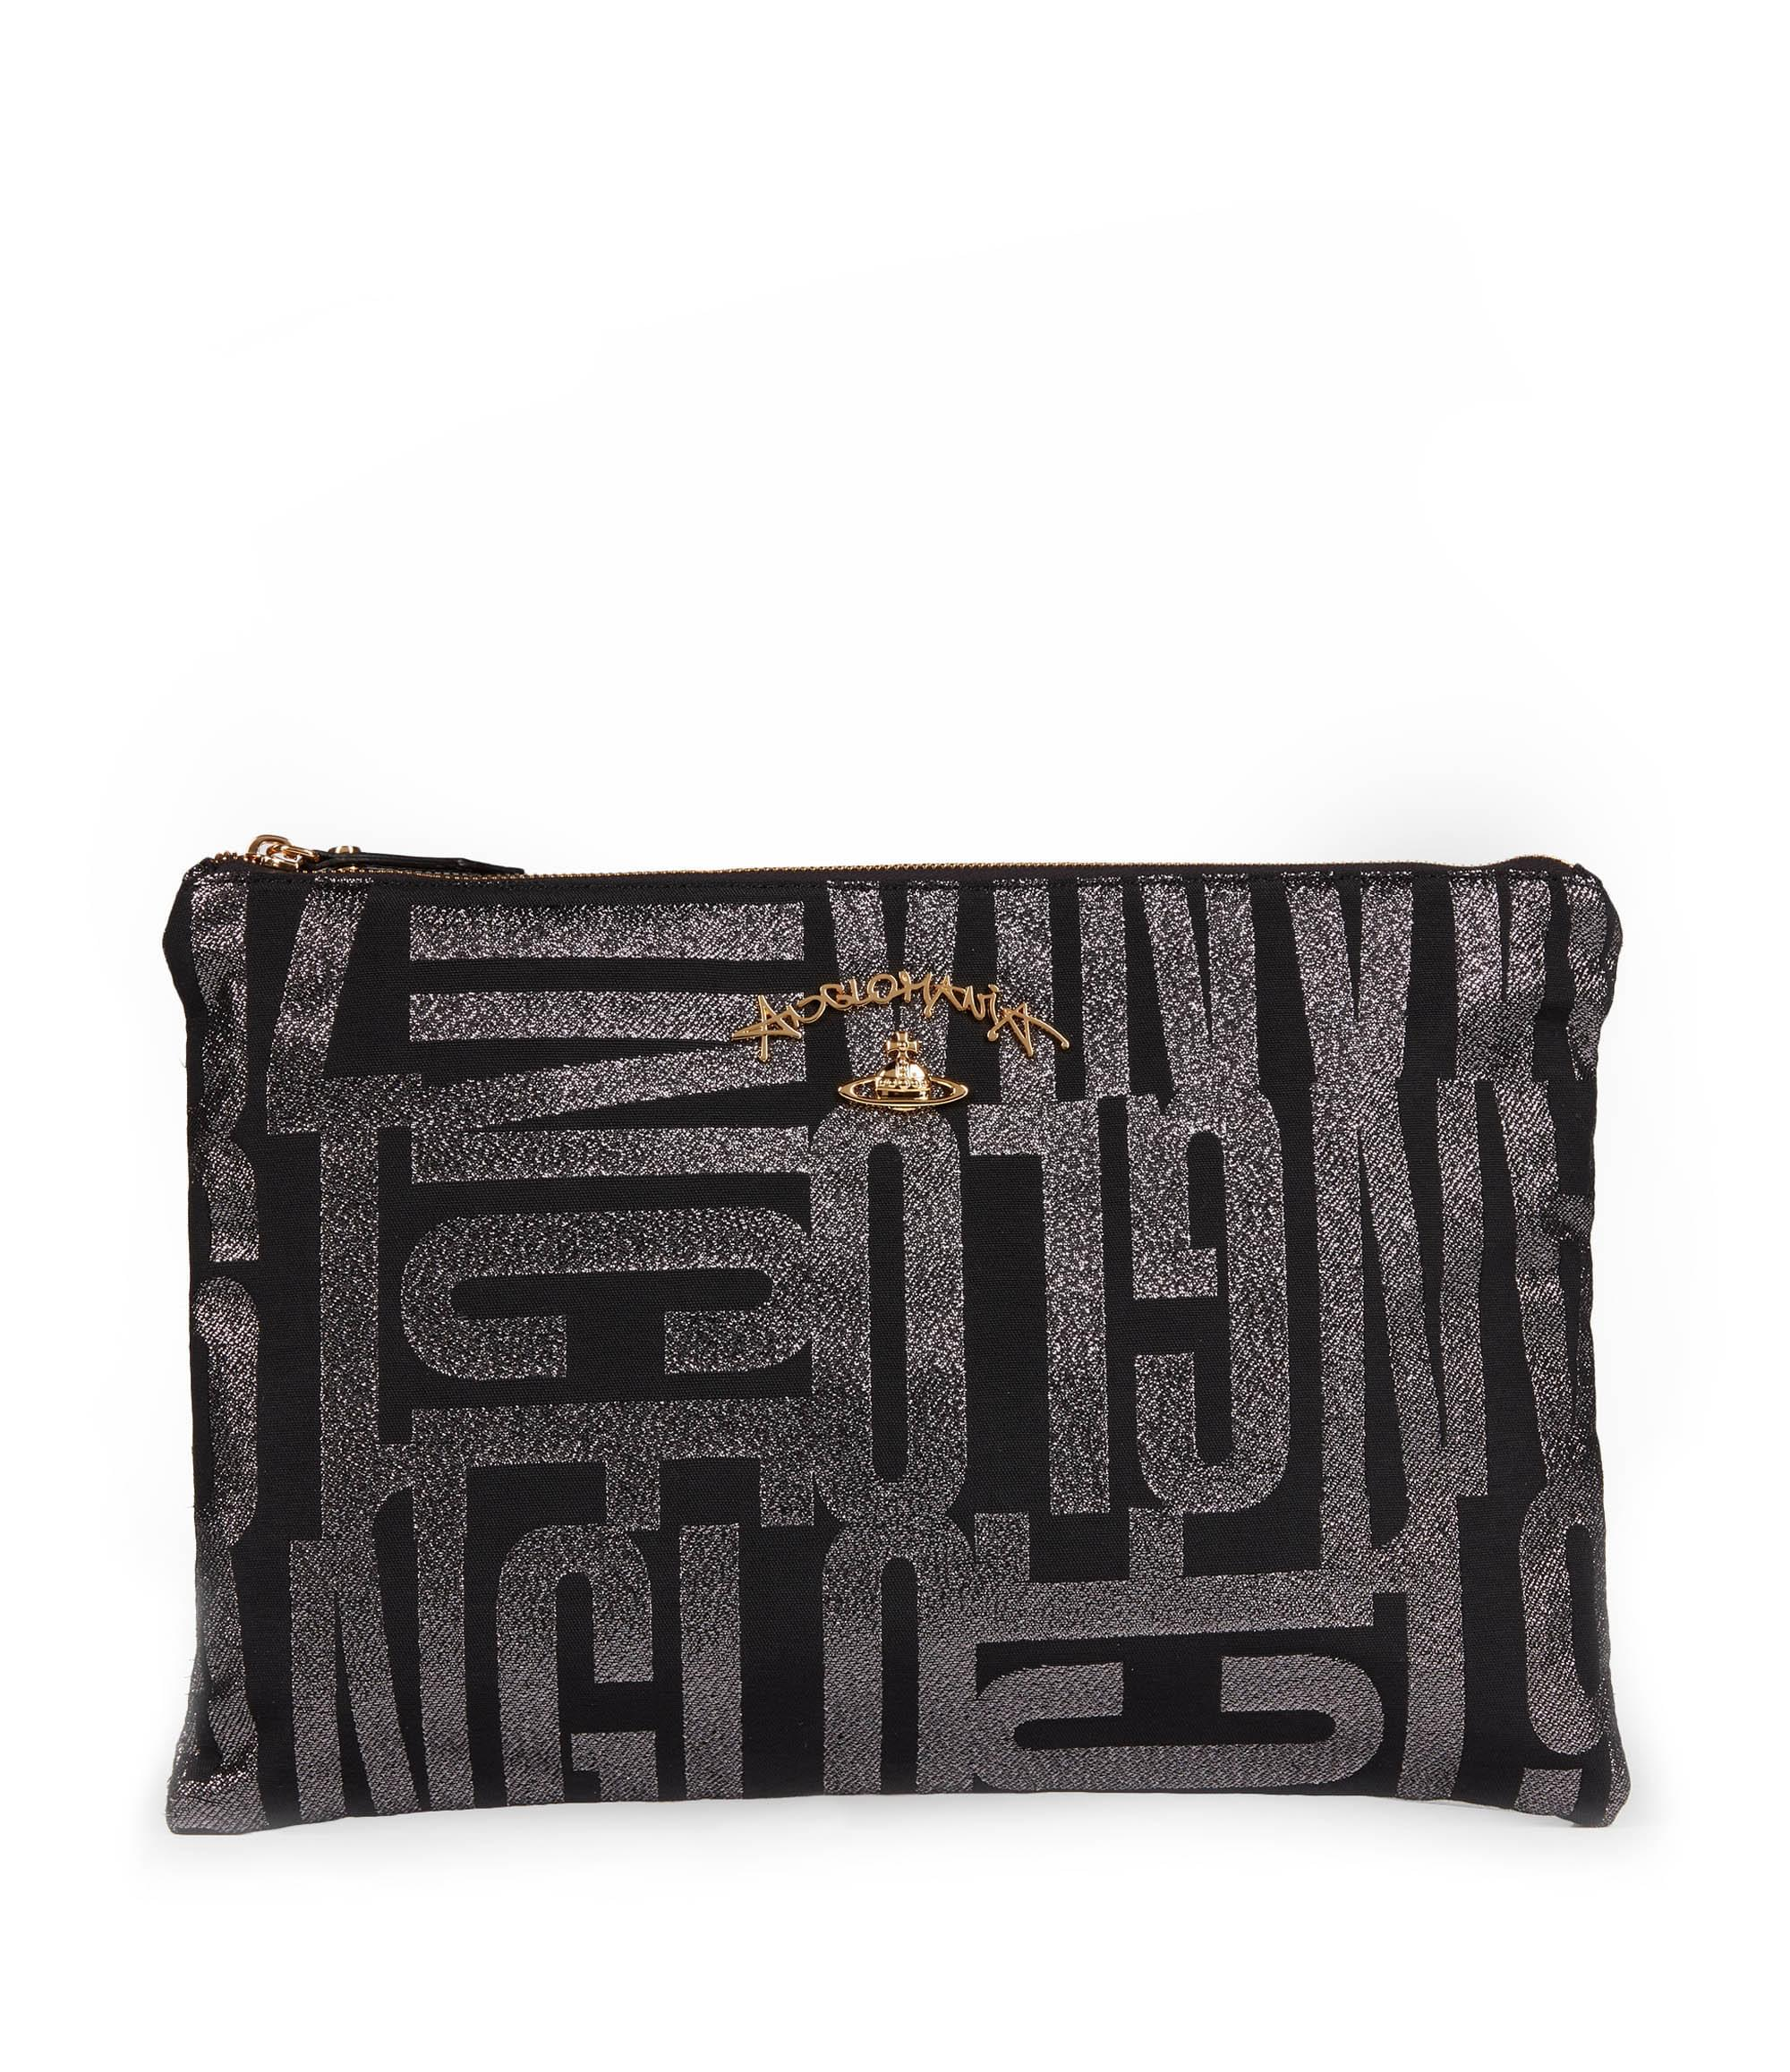 Vivienne Westwood Anglo Jacquard Bag 7106 Anthracite